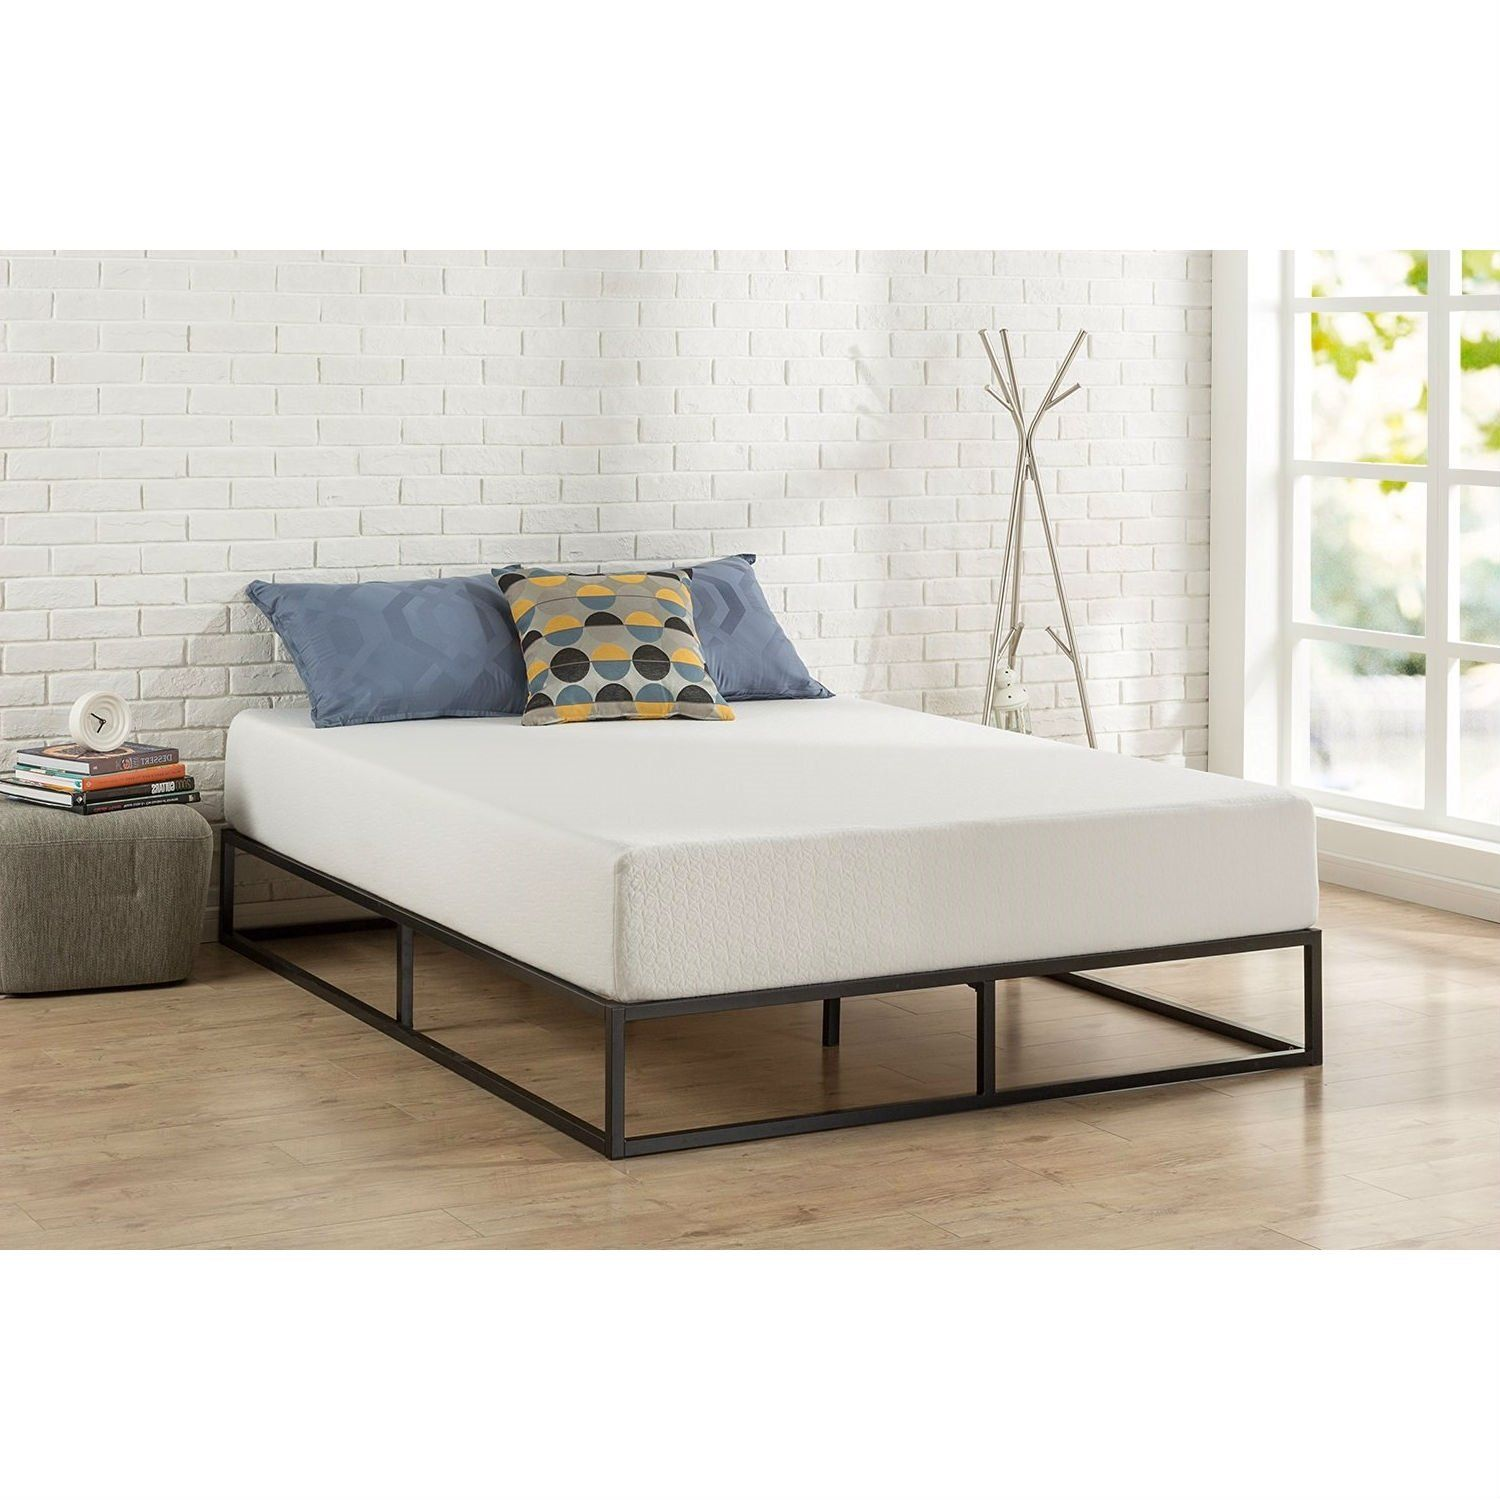 Queen Size Modern 10 Inch Low Profile Metal Platform Bed Frame